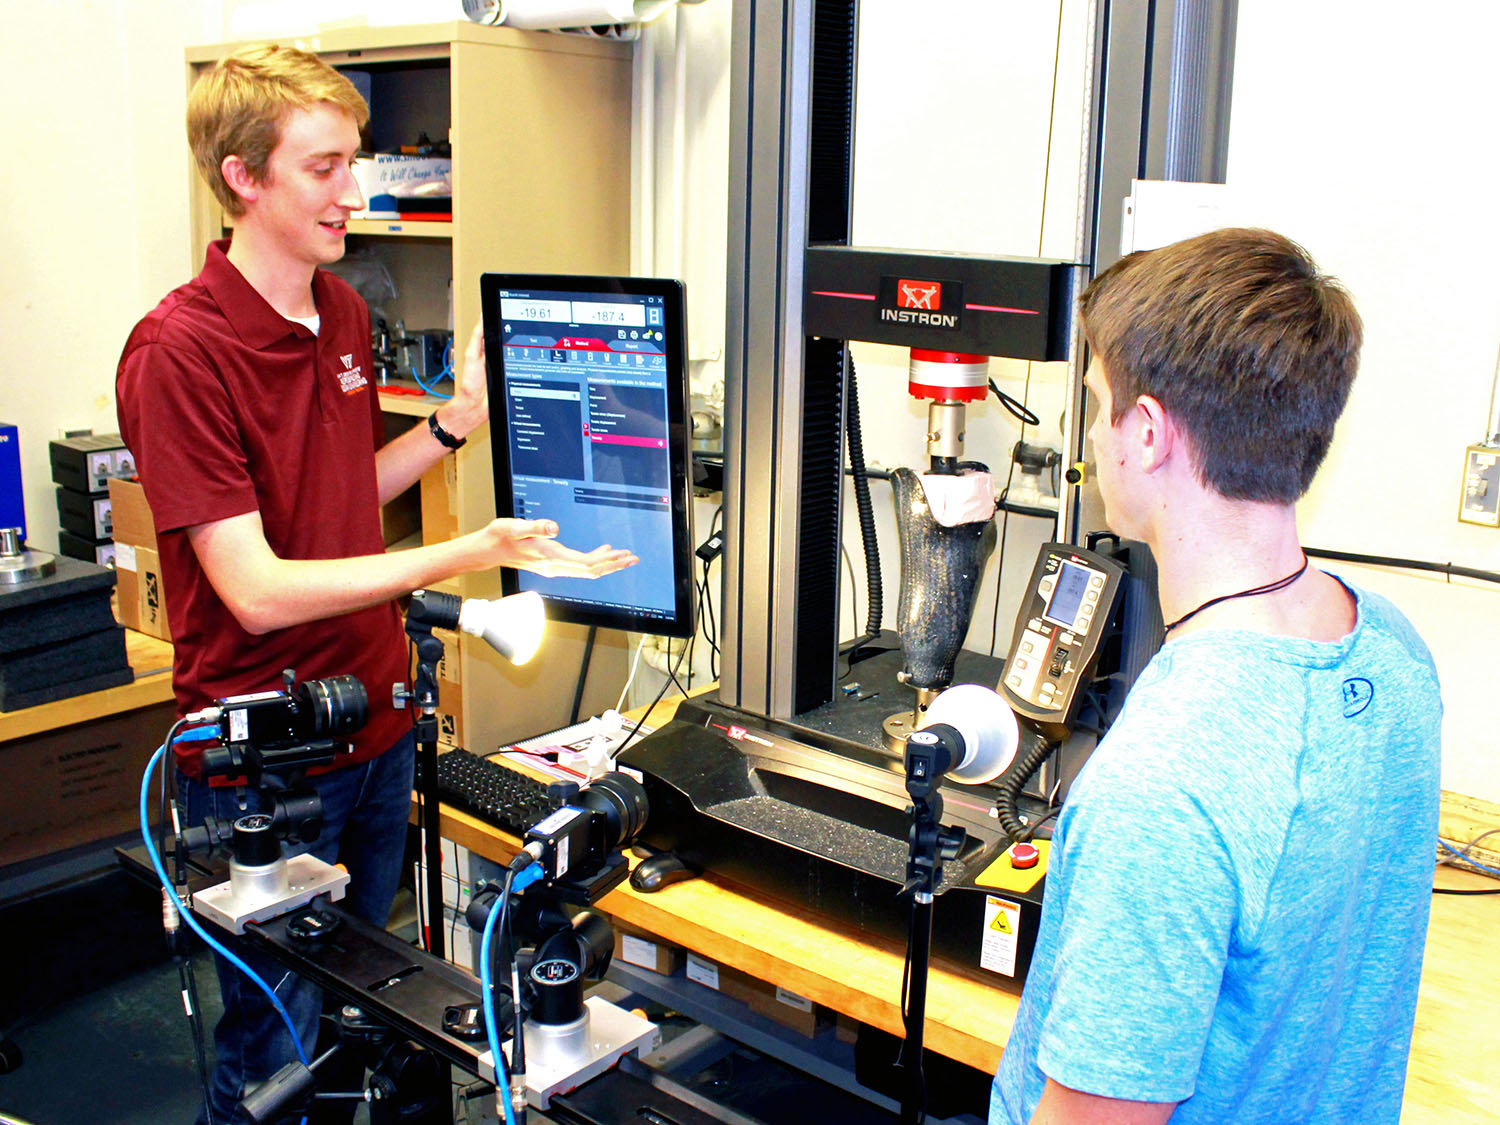 Researchers at Virginia Tech (VT) are recipients of funds to develop ways to improve the comfort of prosthetic sockets.